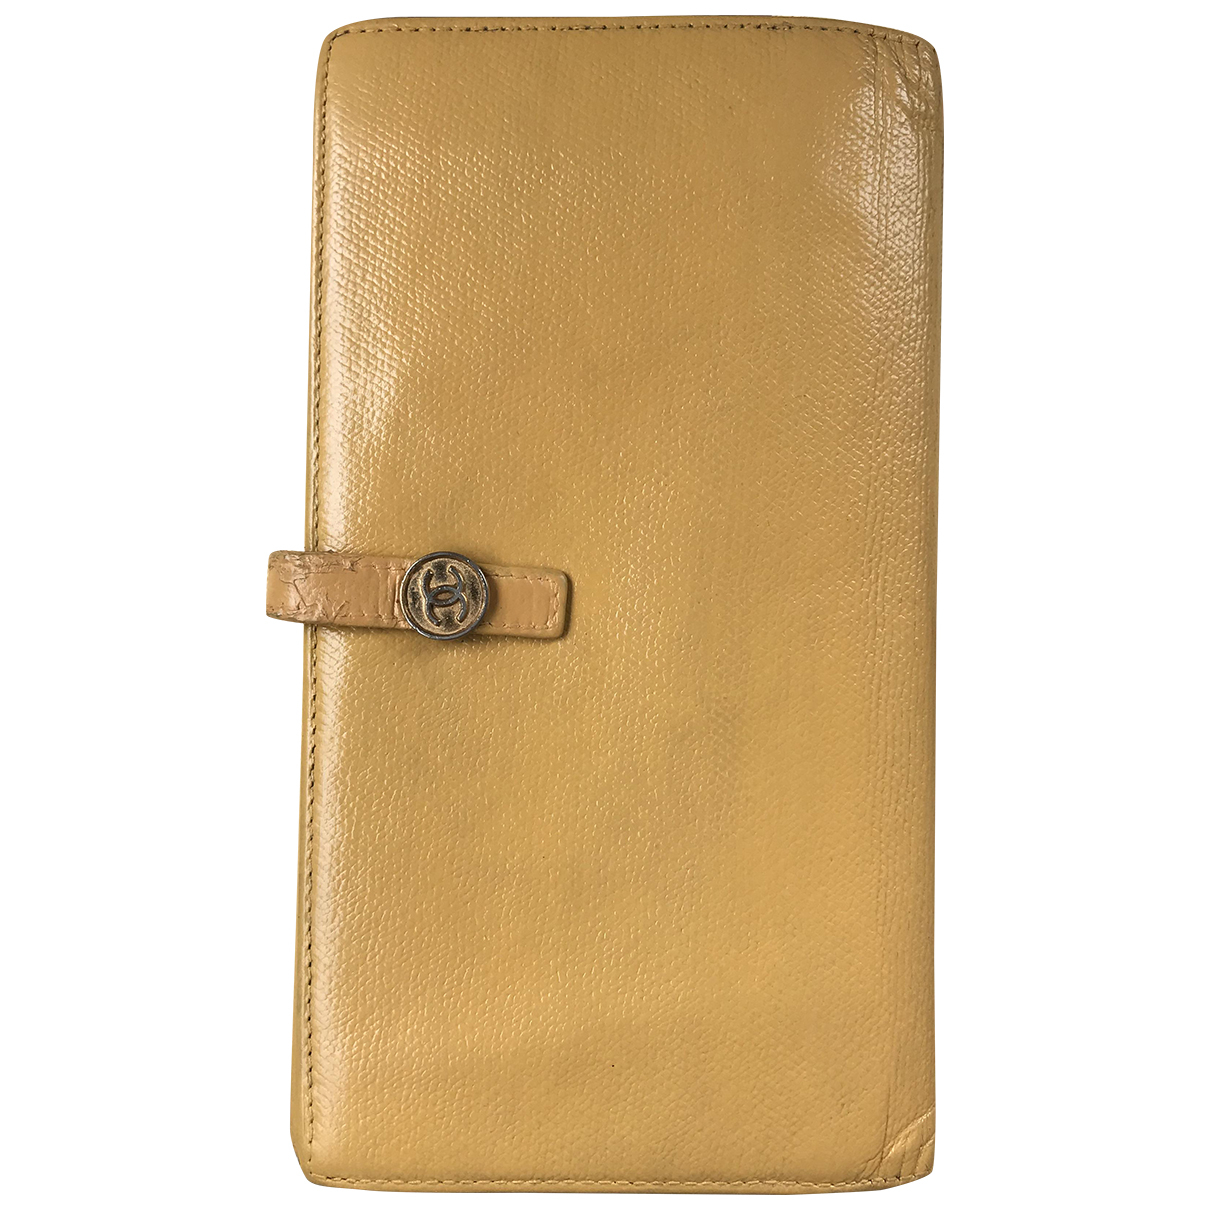 Chanel \N Yellow Leather wallet for Women \N